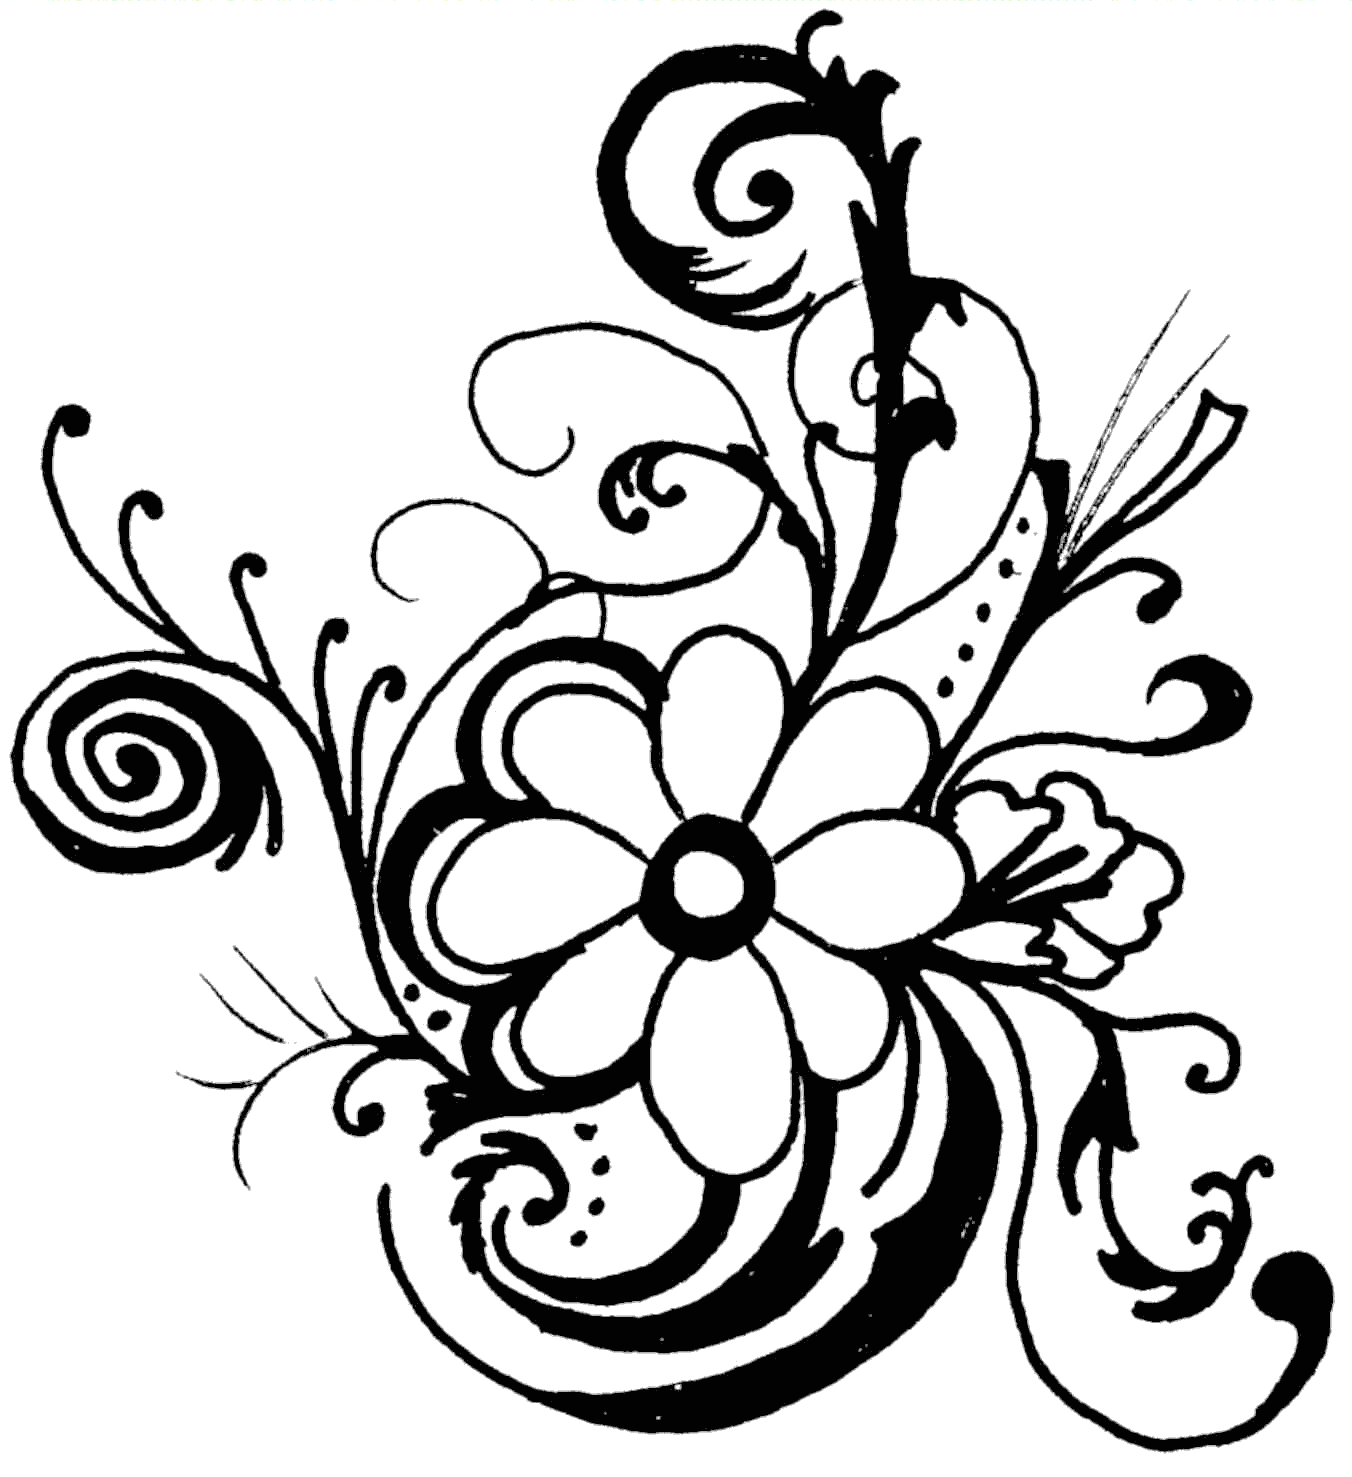 Flower bouquet clipart black and white png library Rose Bouquet Clipart Black And White & Rose Bouquet Clip Art Black ... png library